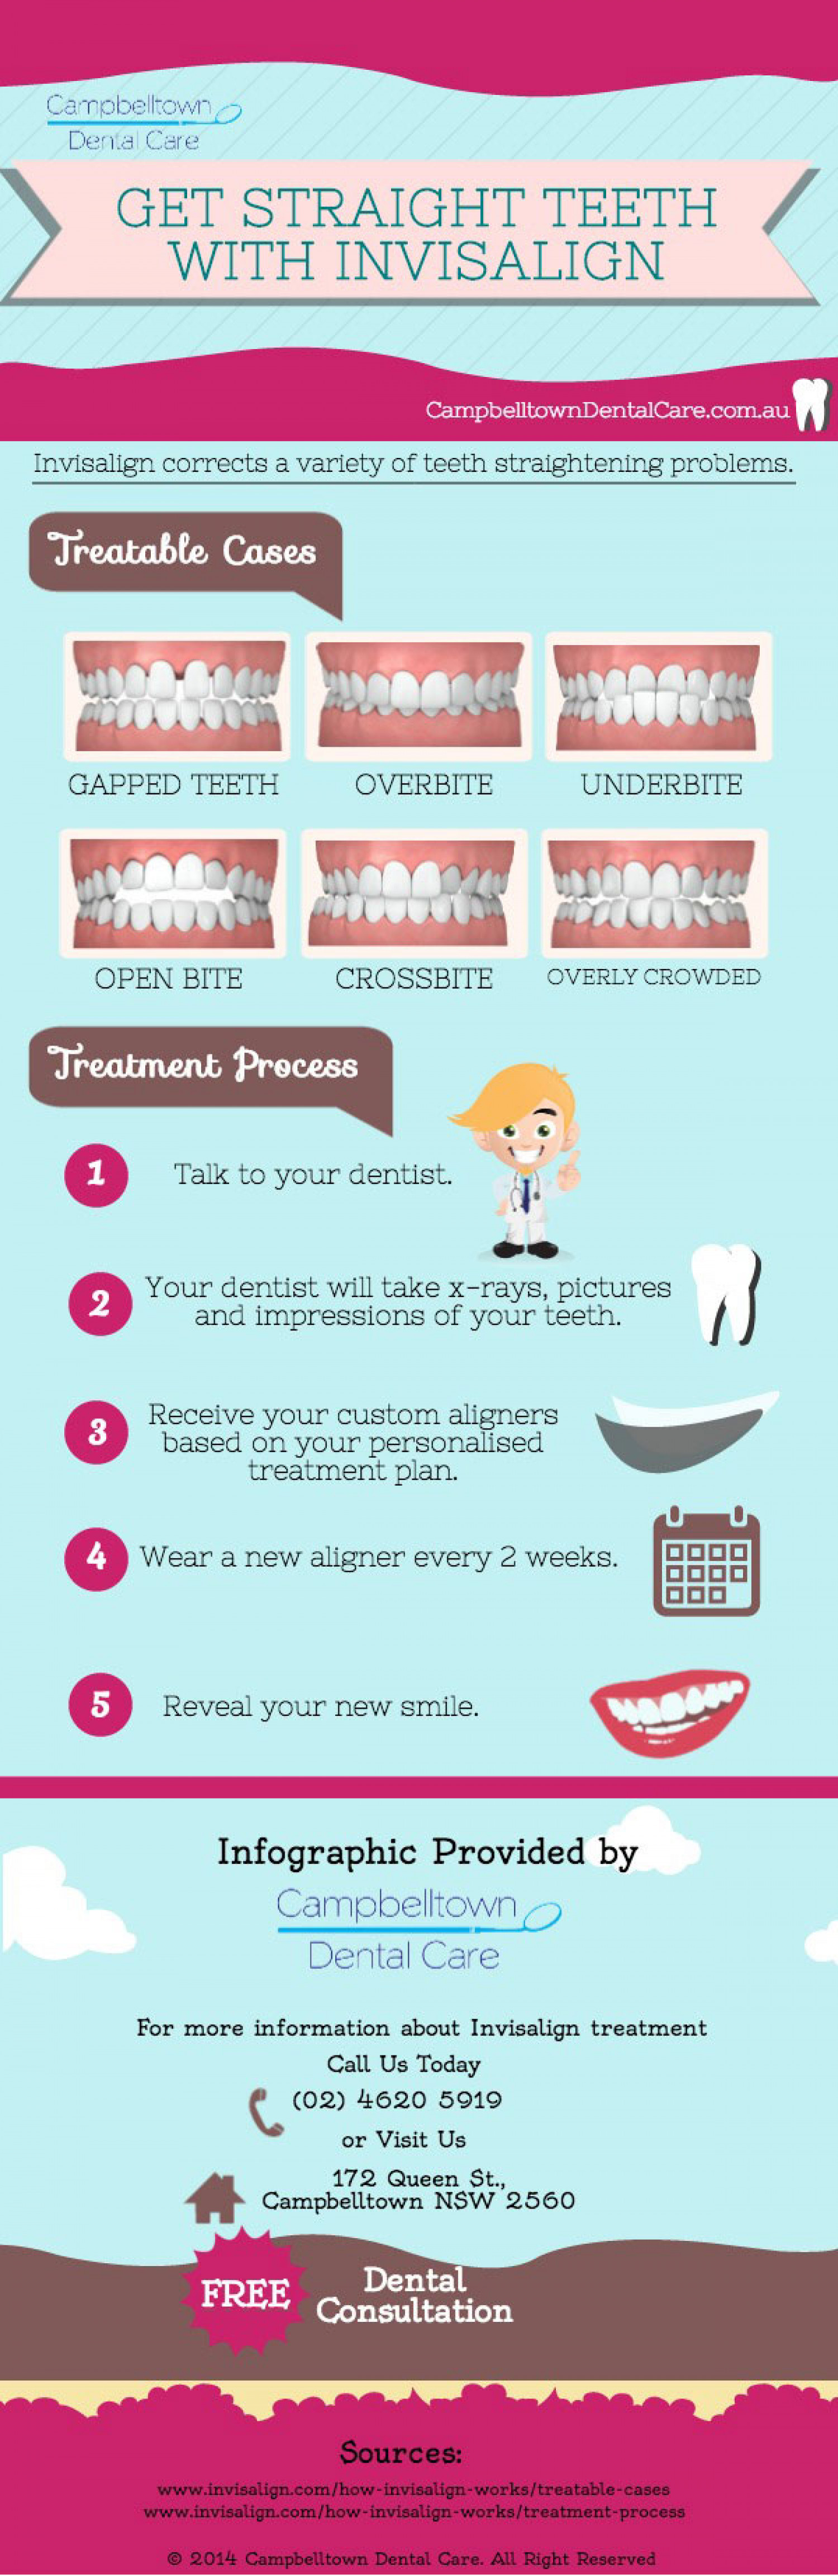 Get straight teeth - Get Straight Teeth With Invisalign Campbelltown Dentist Infographic